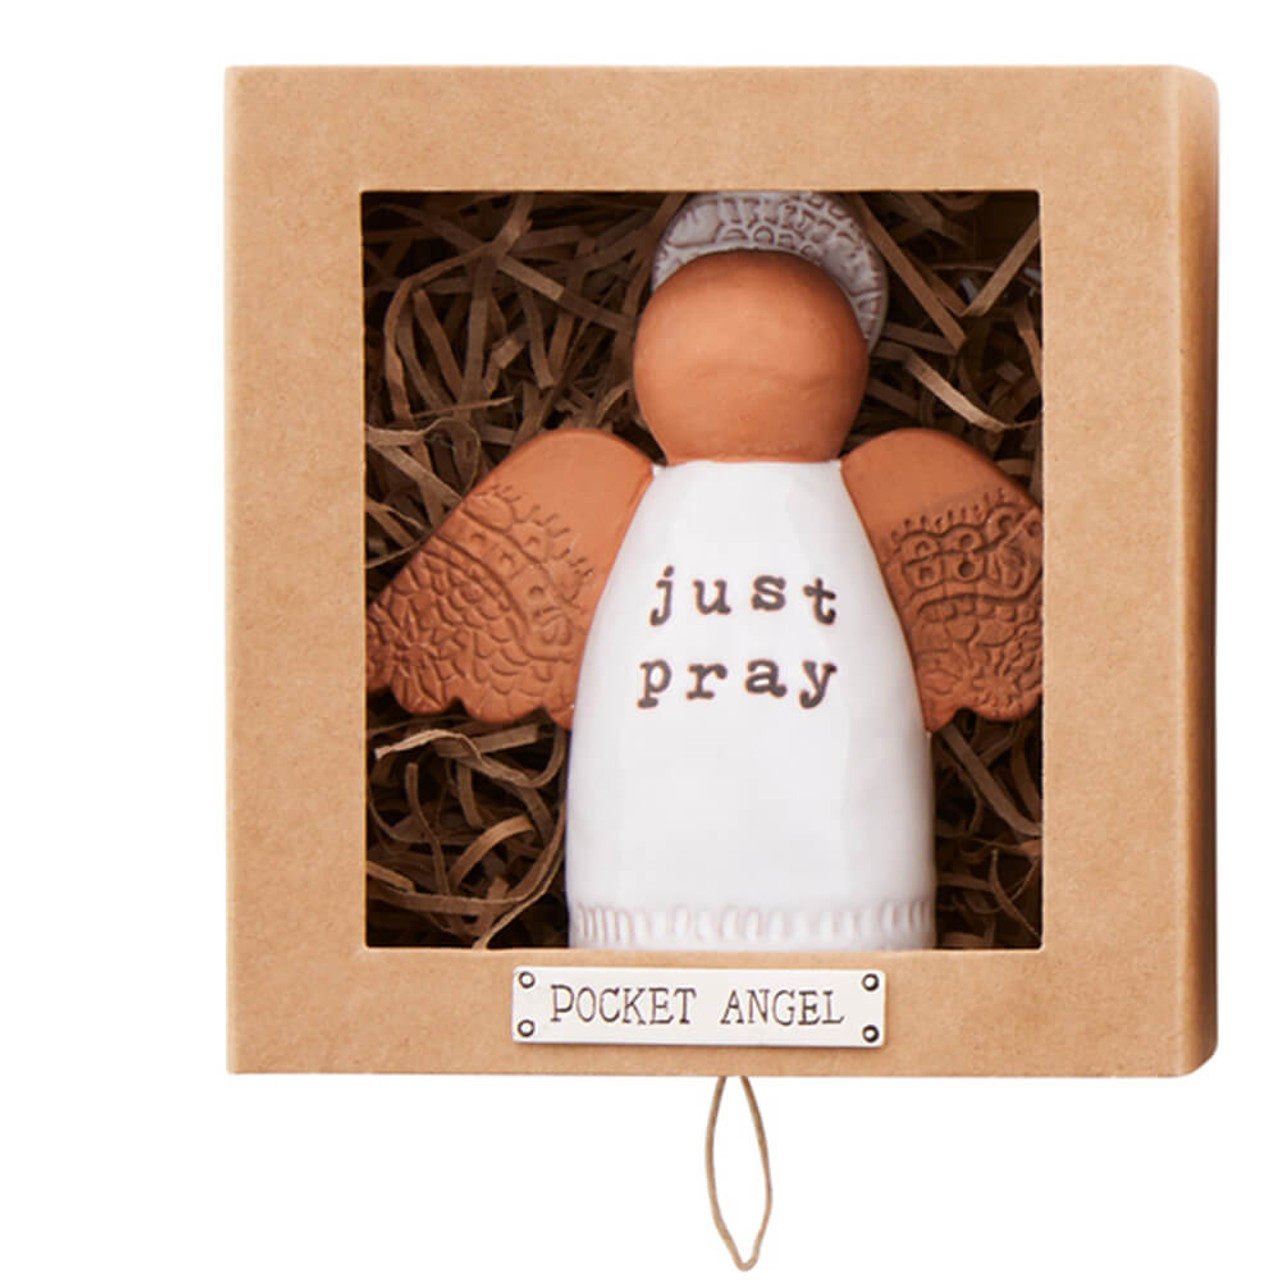 """Terracotta angel with """"just pray"""" sentiment on her glaze painted dress. She is approx 3.5"""" tall x 4"""" wide including her stamped clay wings. She arrives in a 4.75' tall x 4.5' wide x 2.25' deep gift box."""